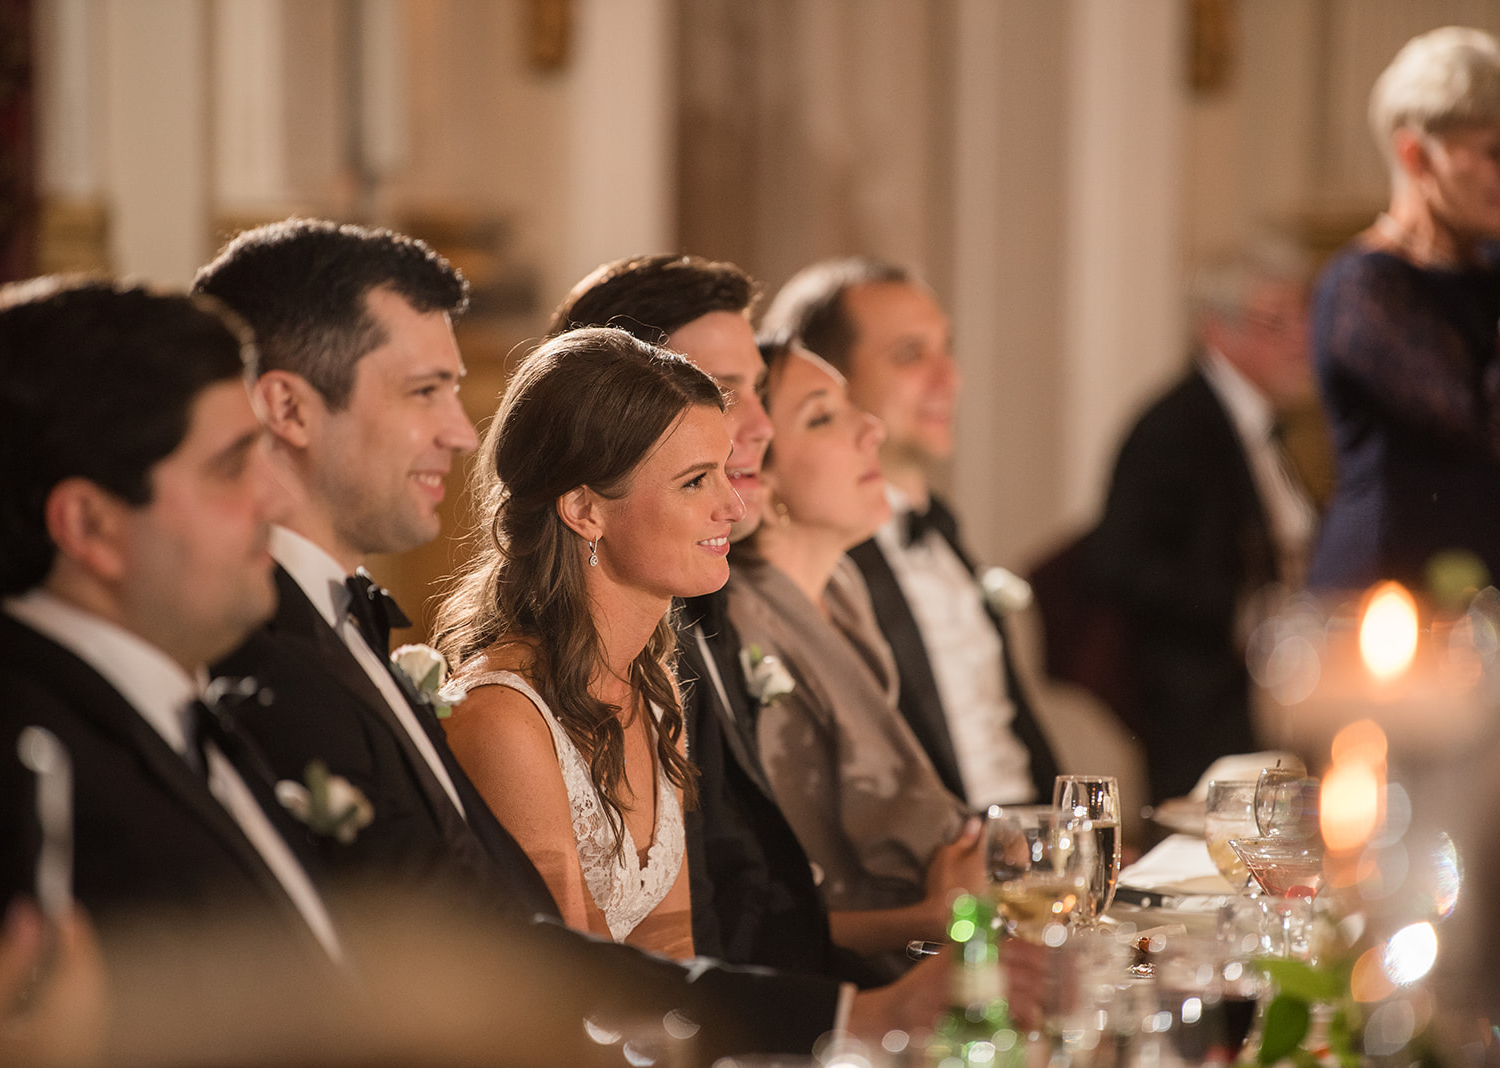 bride and groom smile as they hear speeches from their friends and family